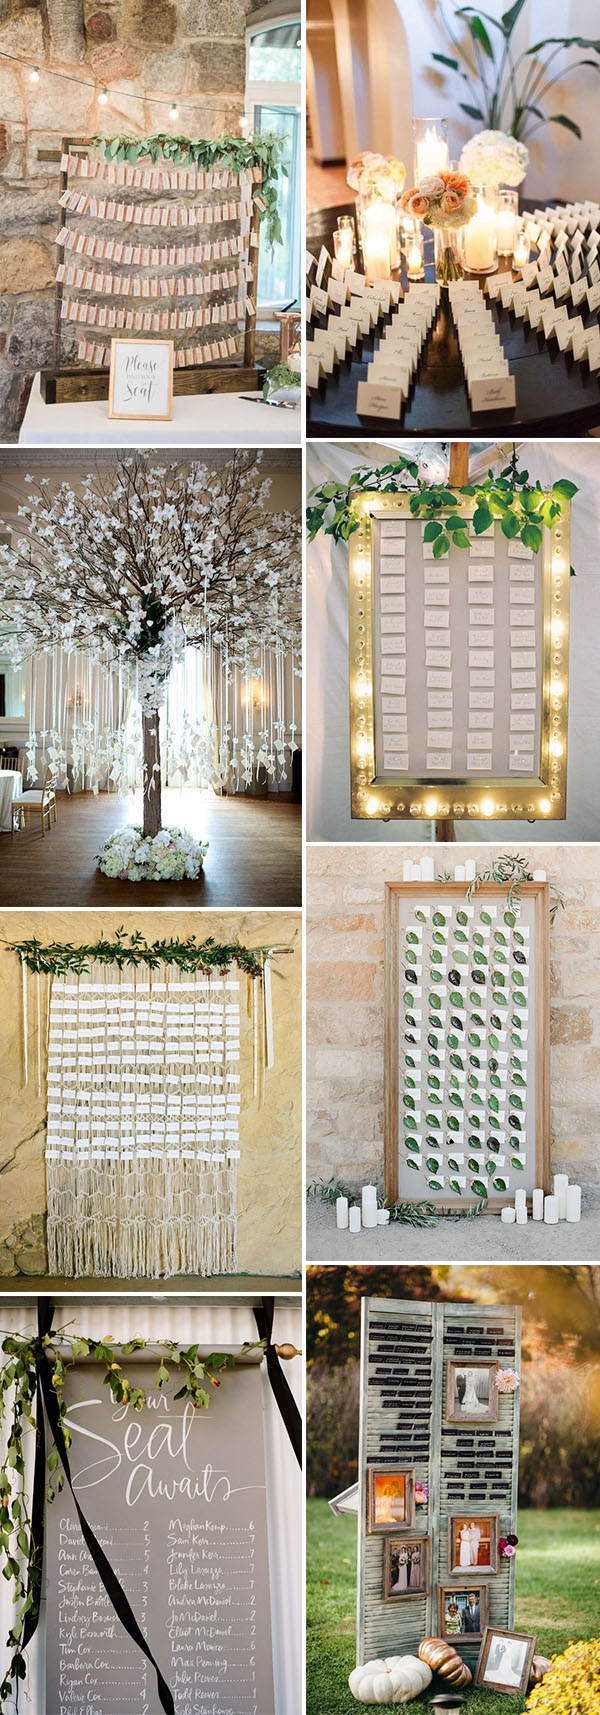 9 Chic Ideas To Display Your Wedding Seating Chart